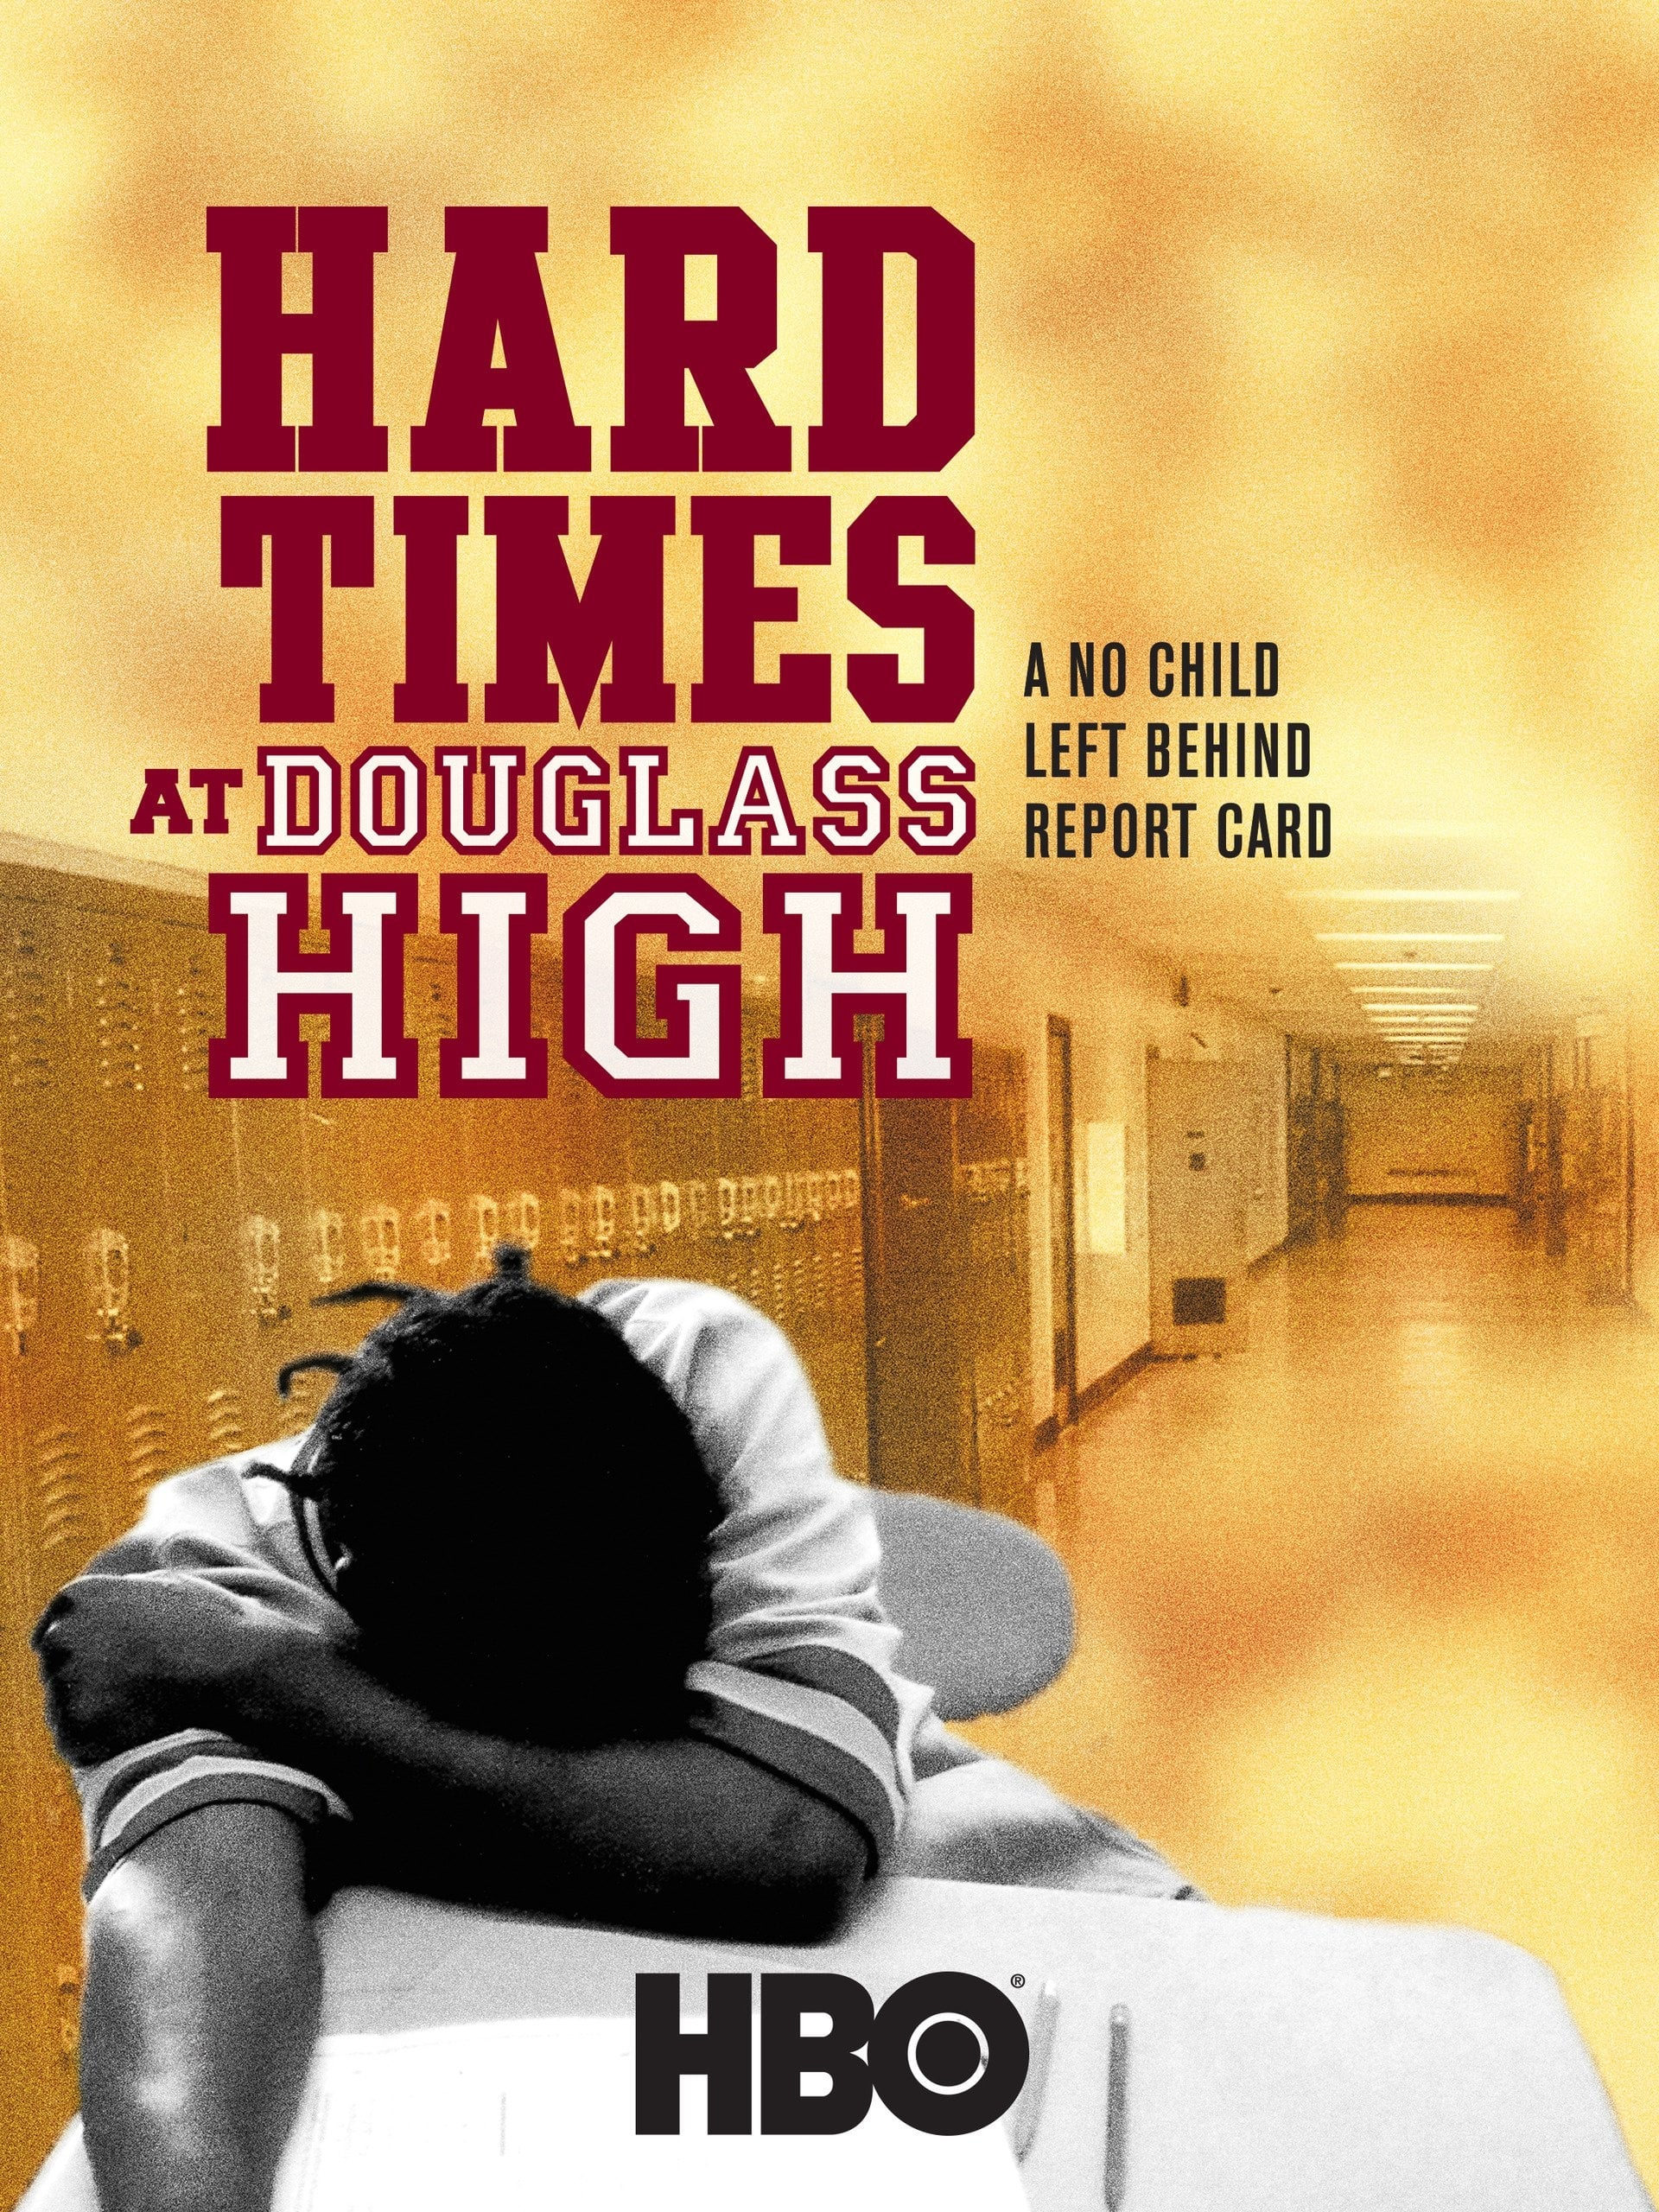 HARD TIMES AT DOUGLASS HIGH: A NO CHILD LEFT BEHIND REPORT CARD